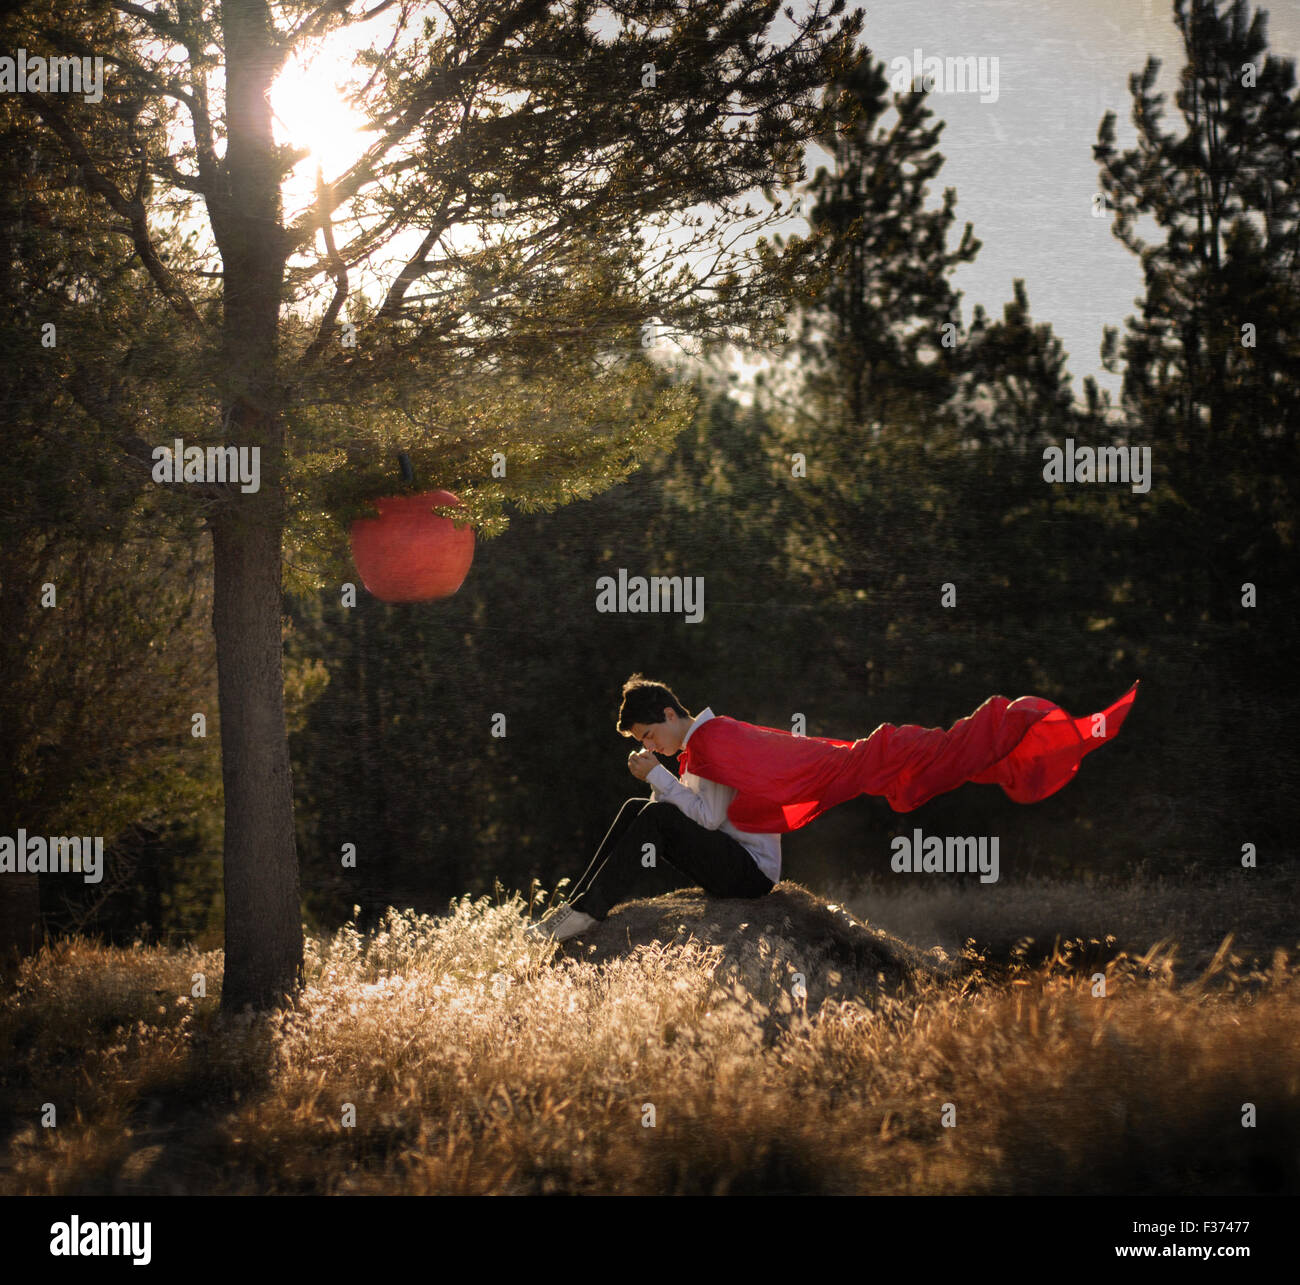 boy with a red cap siting in a hill in the forest - Stock Image